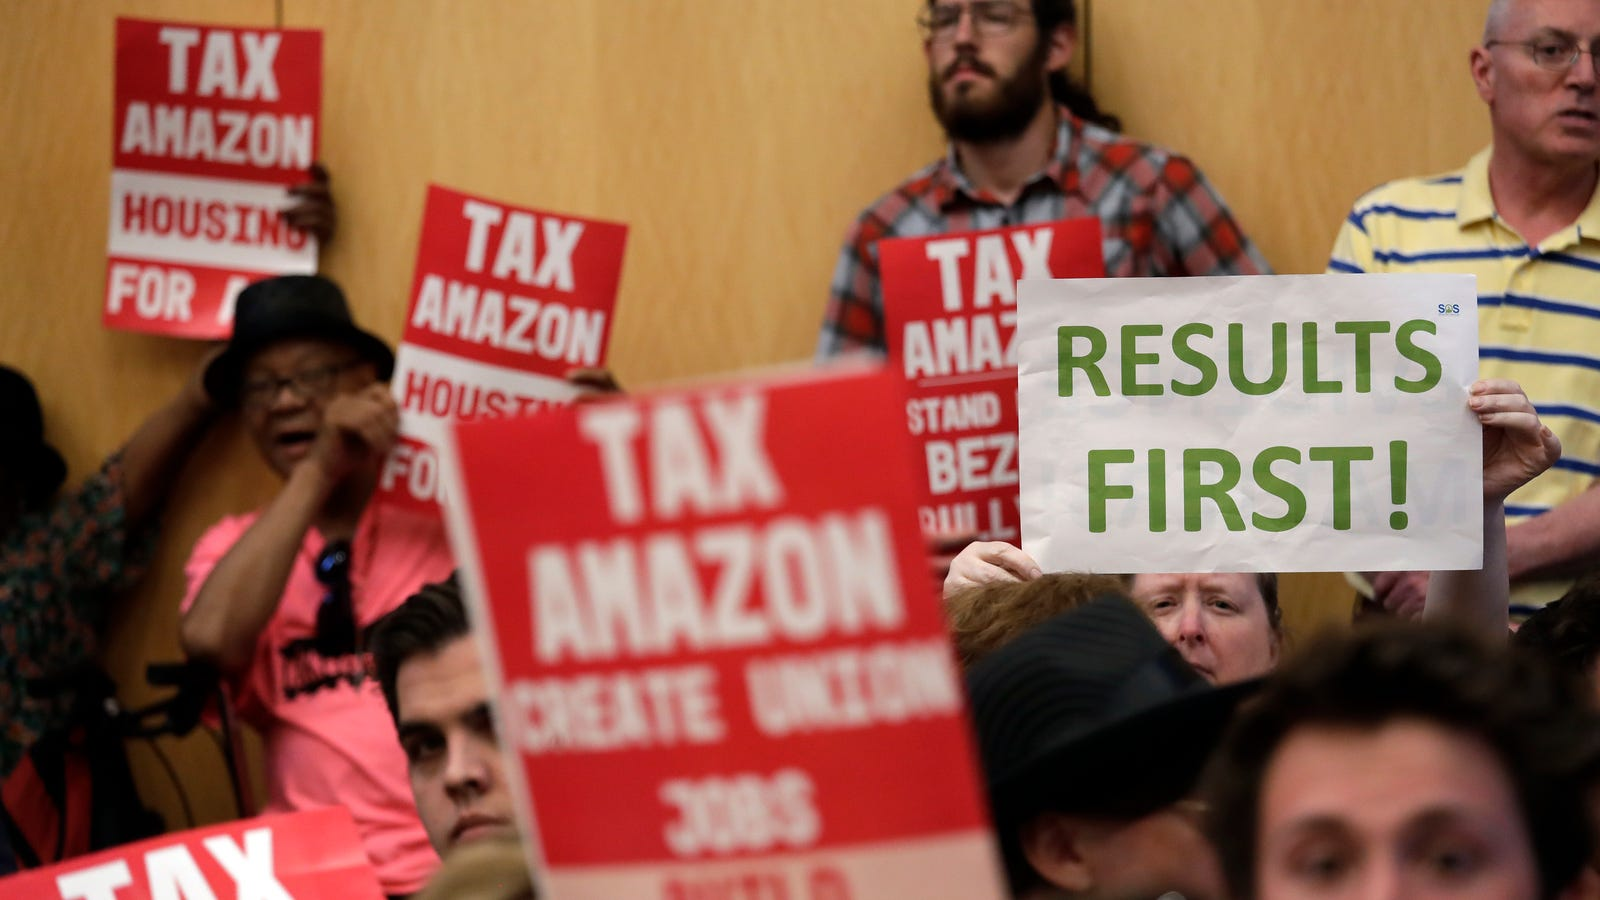 Against Amazon's Wishes, Seattle Passes 'Head Tax' on Big Businesses